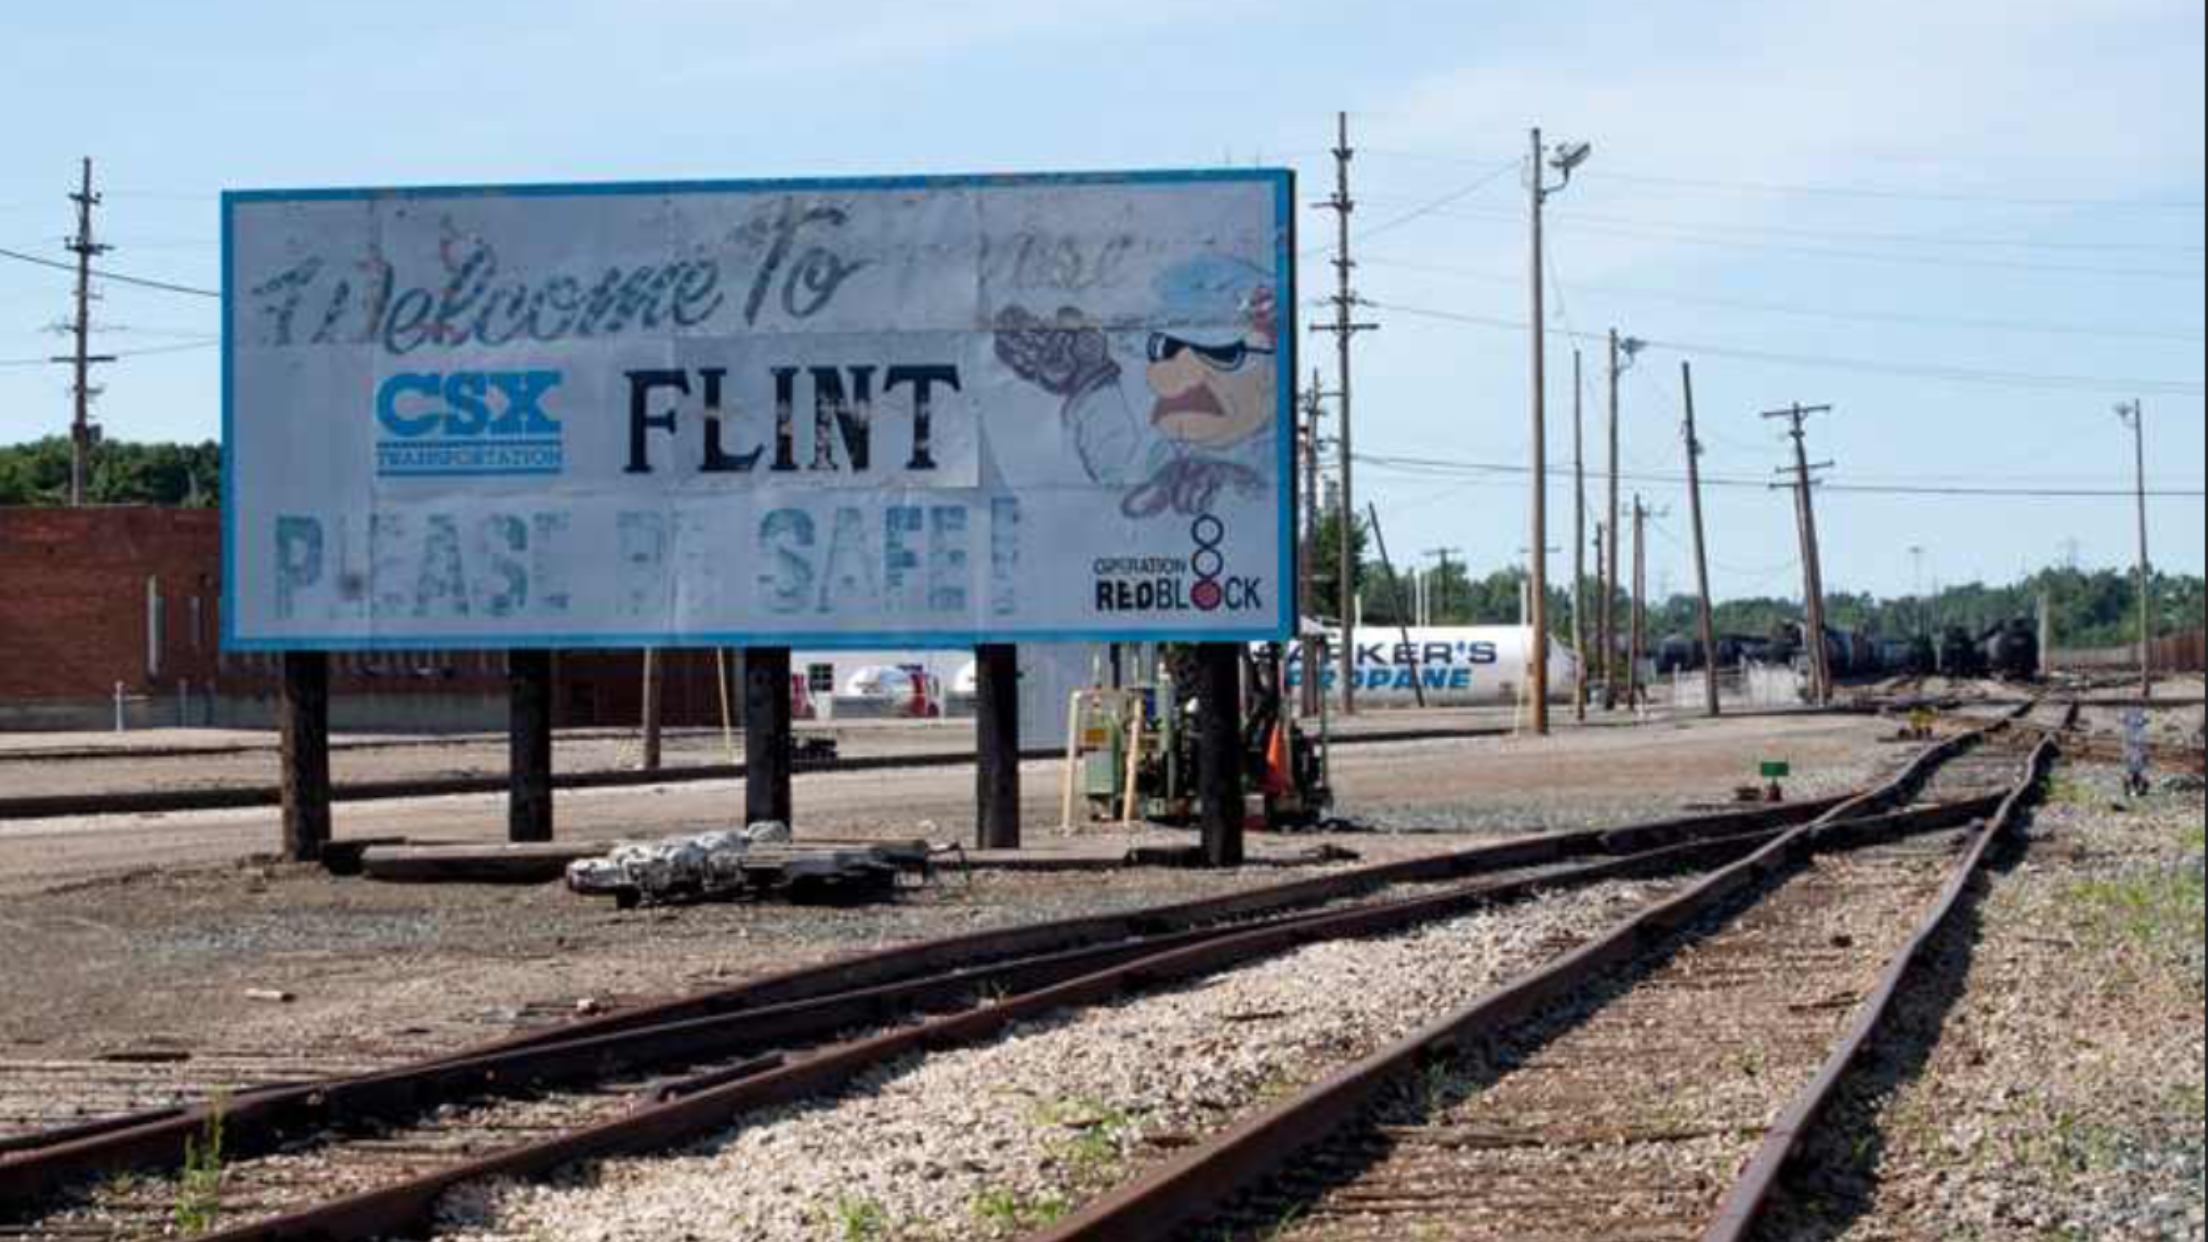 24 Hours In Flint Part One The First 12 Must Be 18 Years Of Age